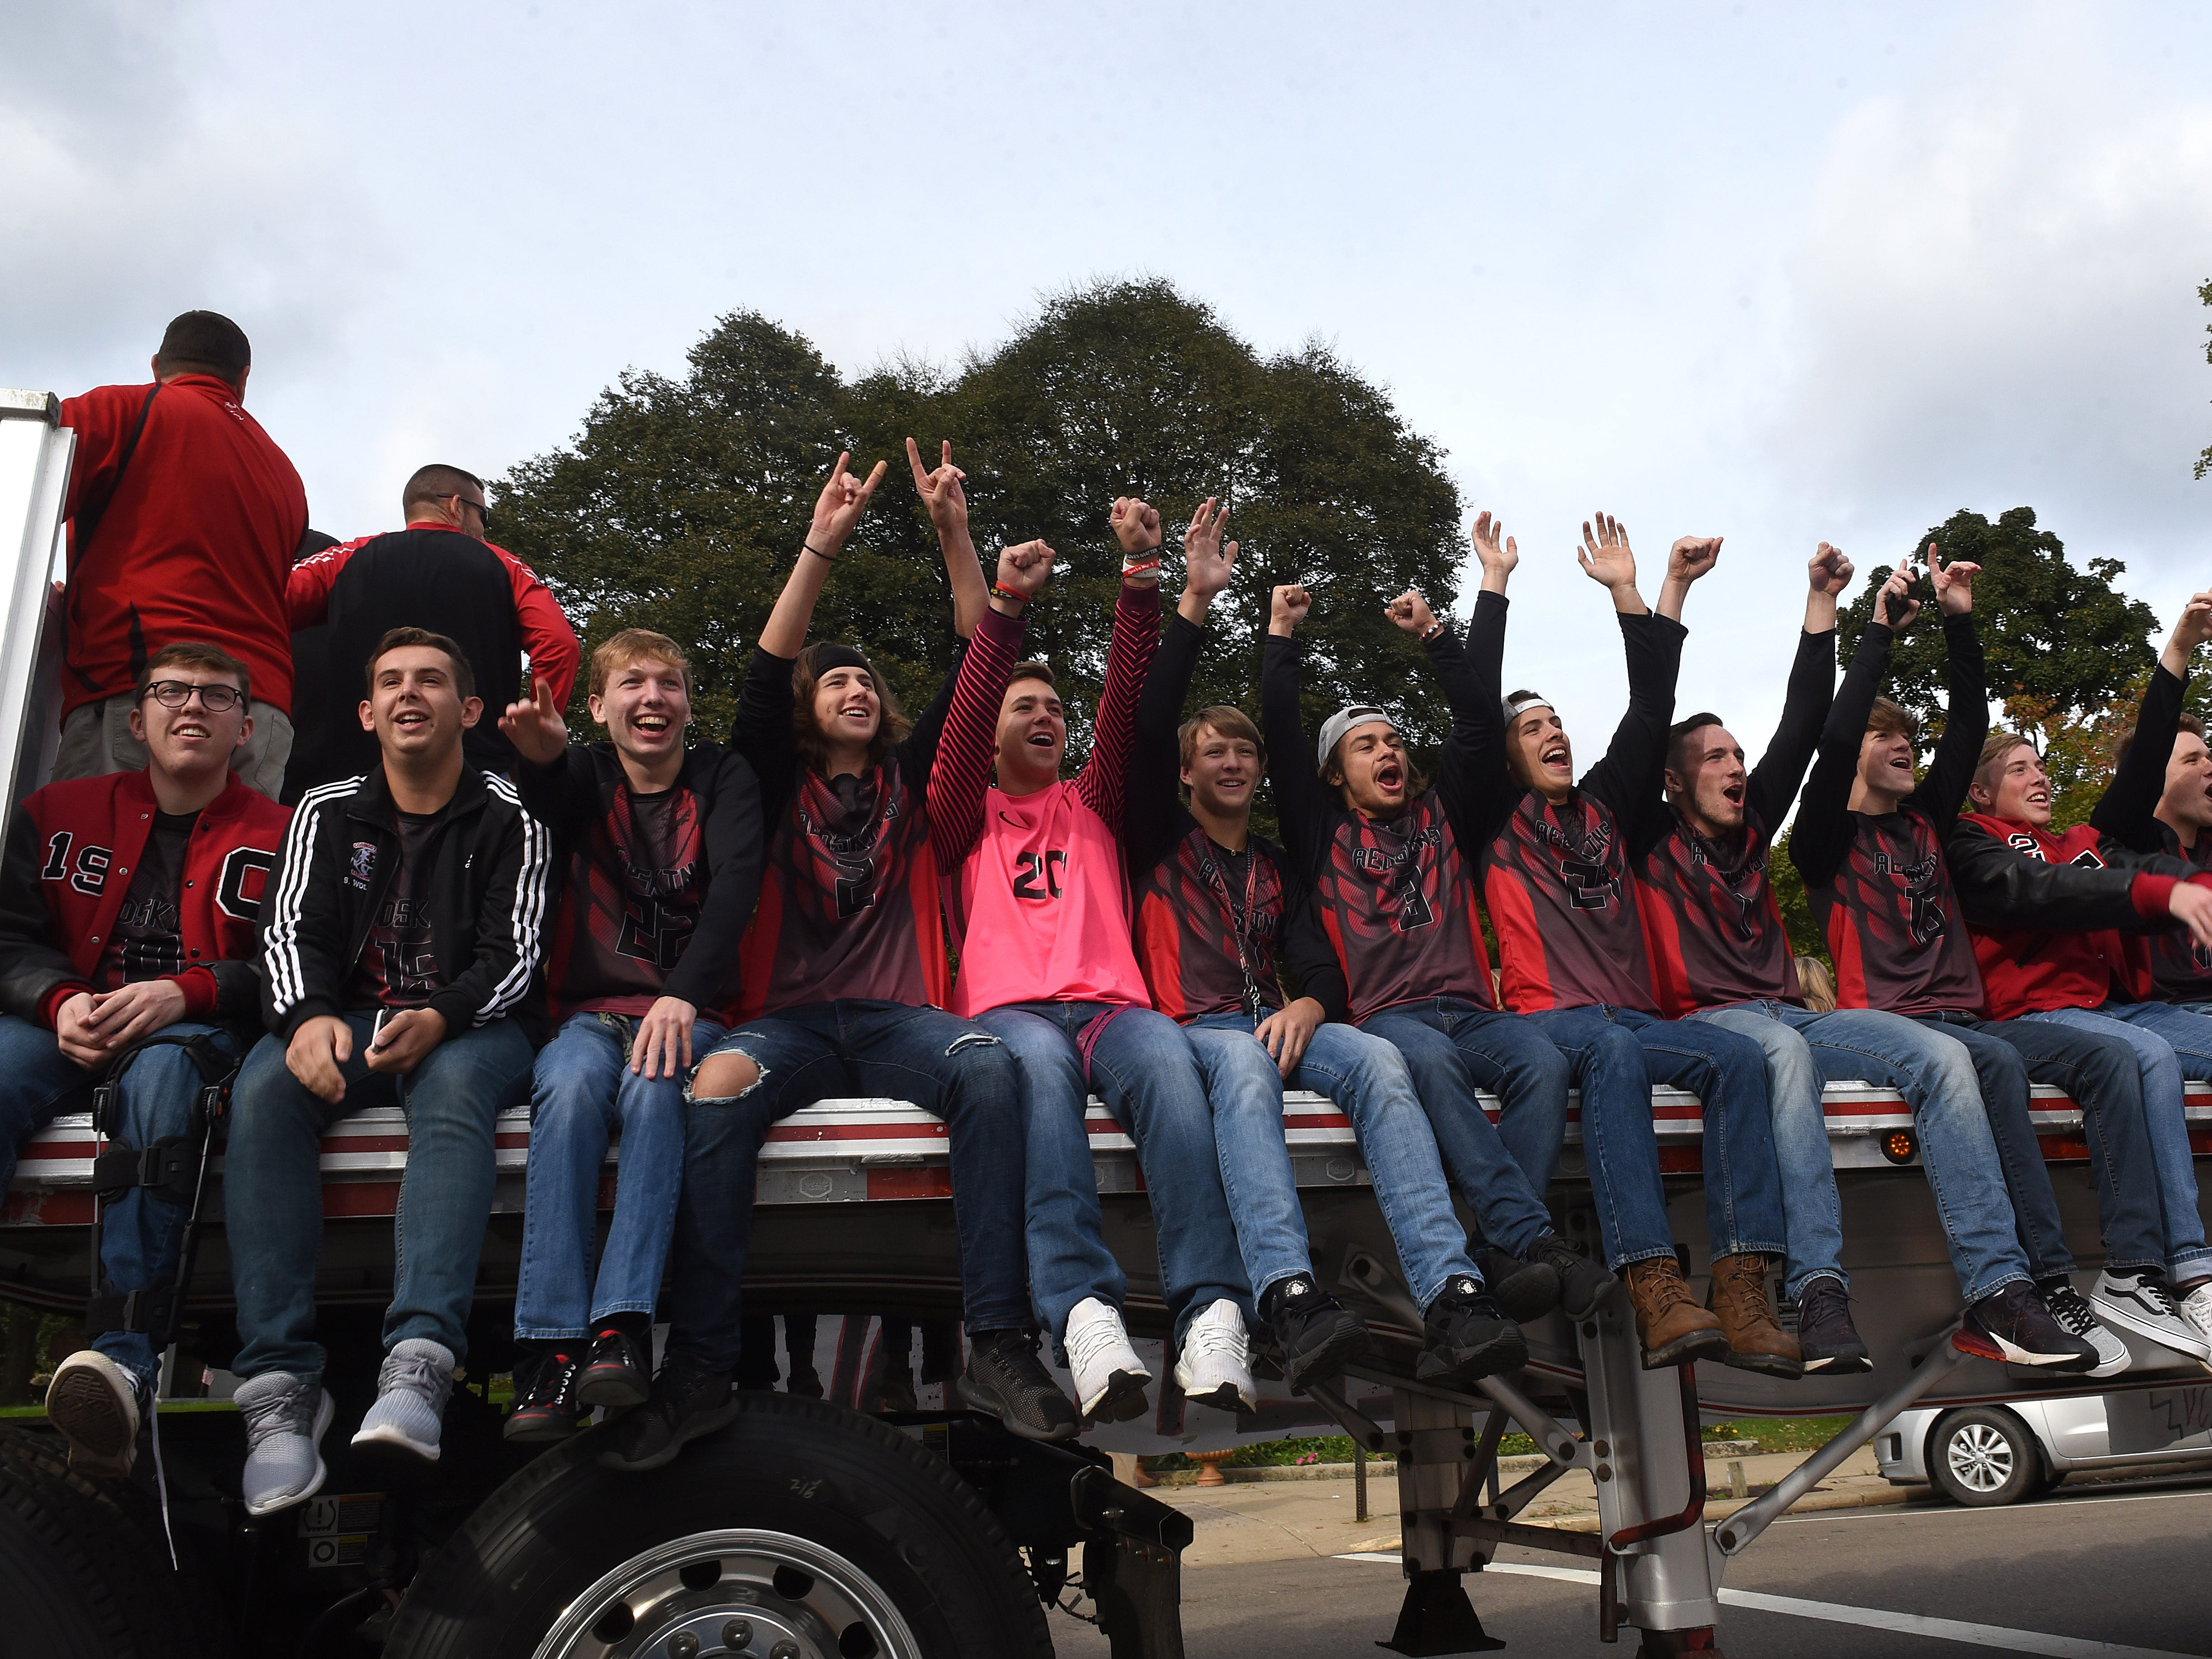 Coshocton soccer players cheer at the crowd along Main Street during the homecoming parade on Friday, Oct. 12, 2018.